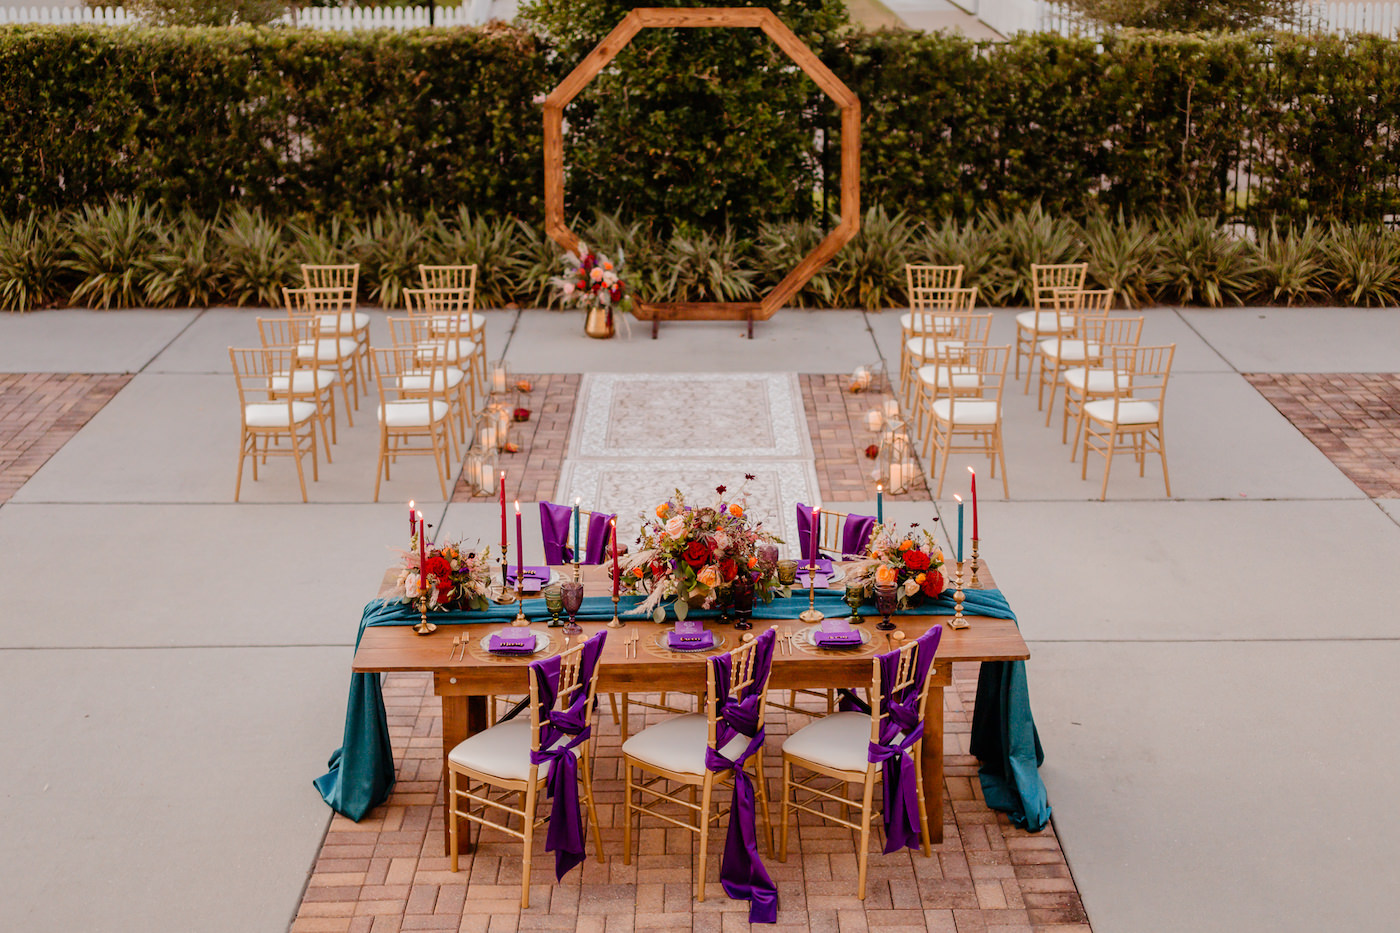 Boho Glam Wedding Ceremony Backdrop with Wood Geometric Arch and Gold Chiavari Chairs and Rug Runner | Colorful Orange Pink and Red Floral Centerpiece with Pampas Grass | Tampa Wedding Florist Monarch Events and Designs | Wood Farm Table with Teal Turquoise Runner and Colorful Taper Candles and Purple Chair Sashes